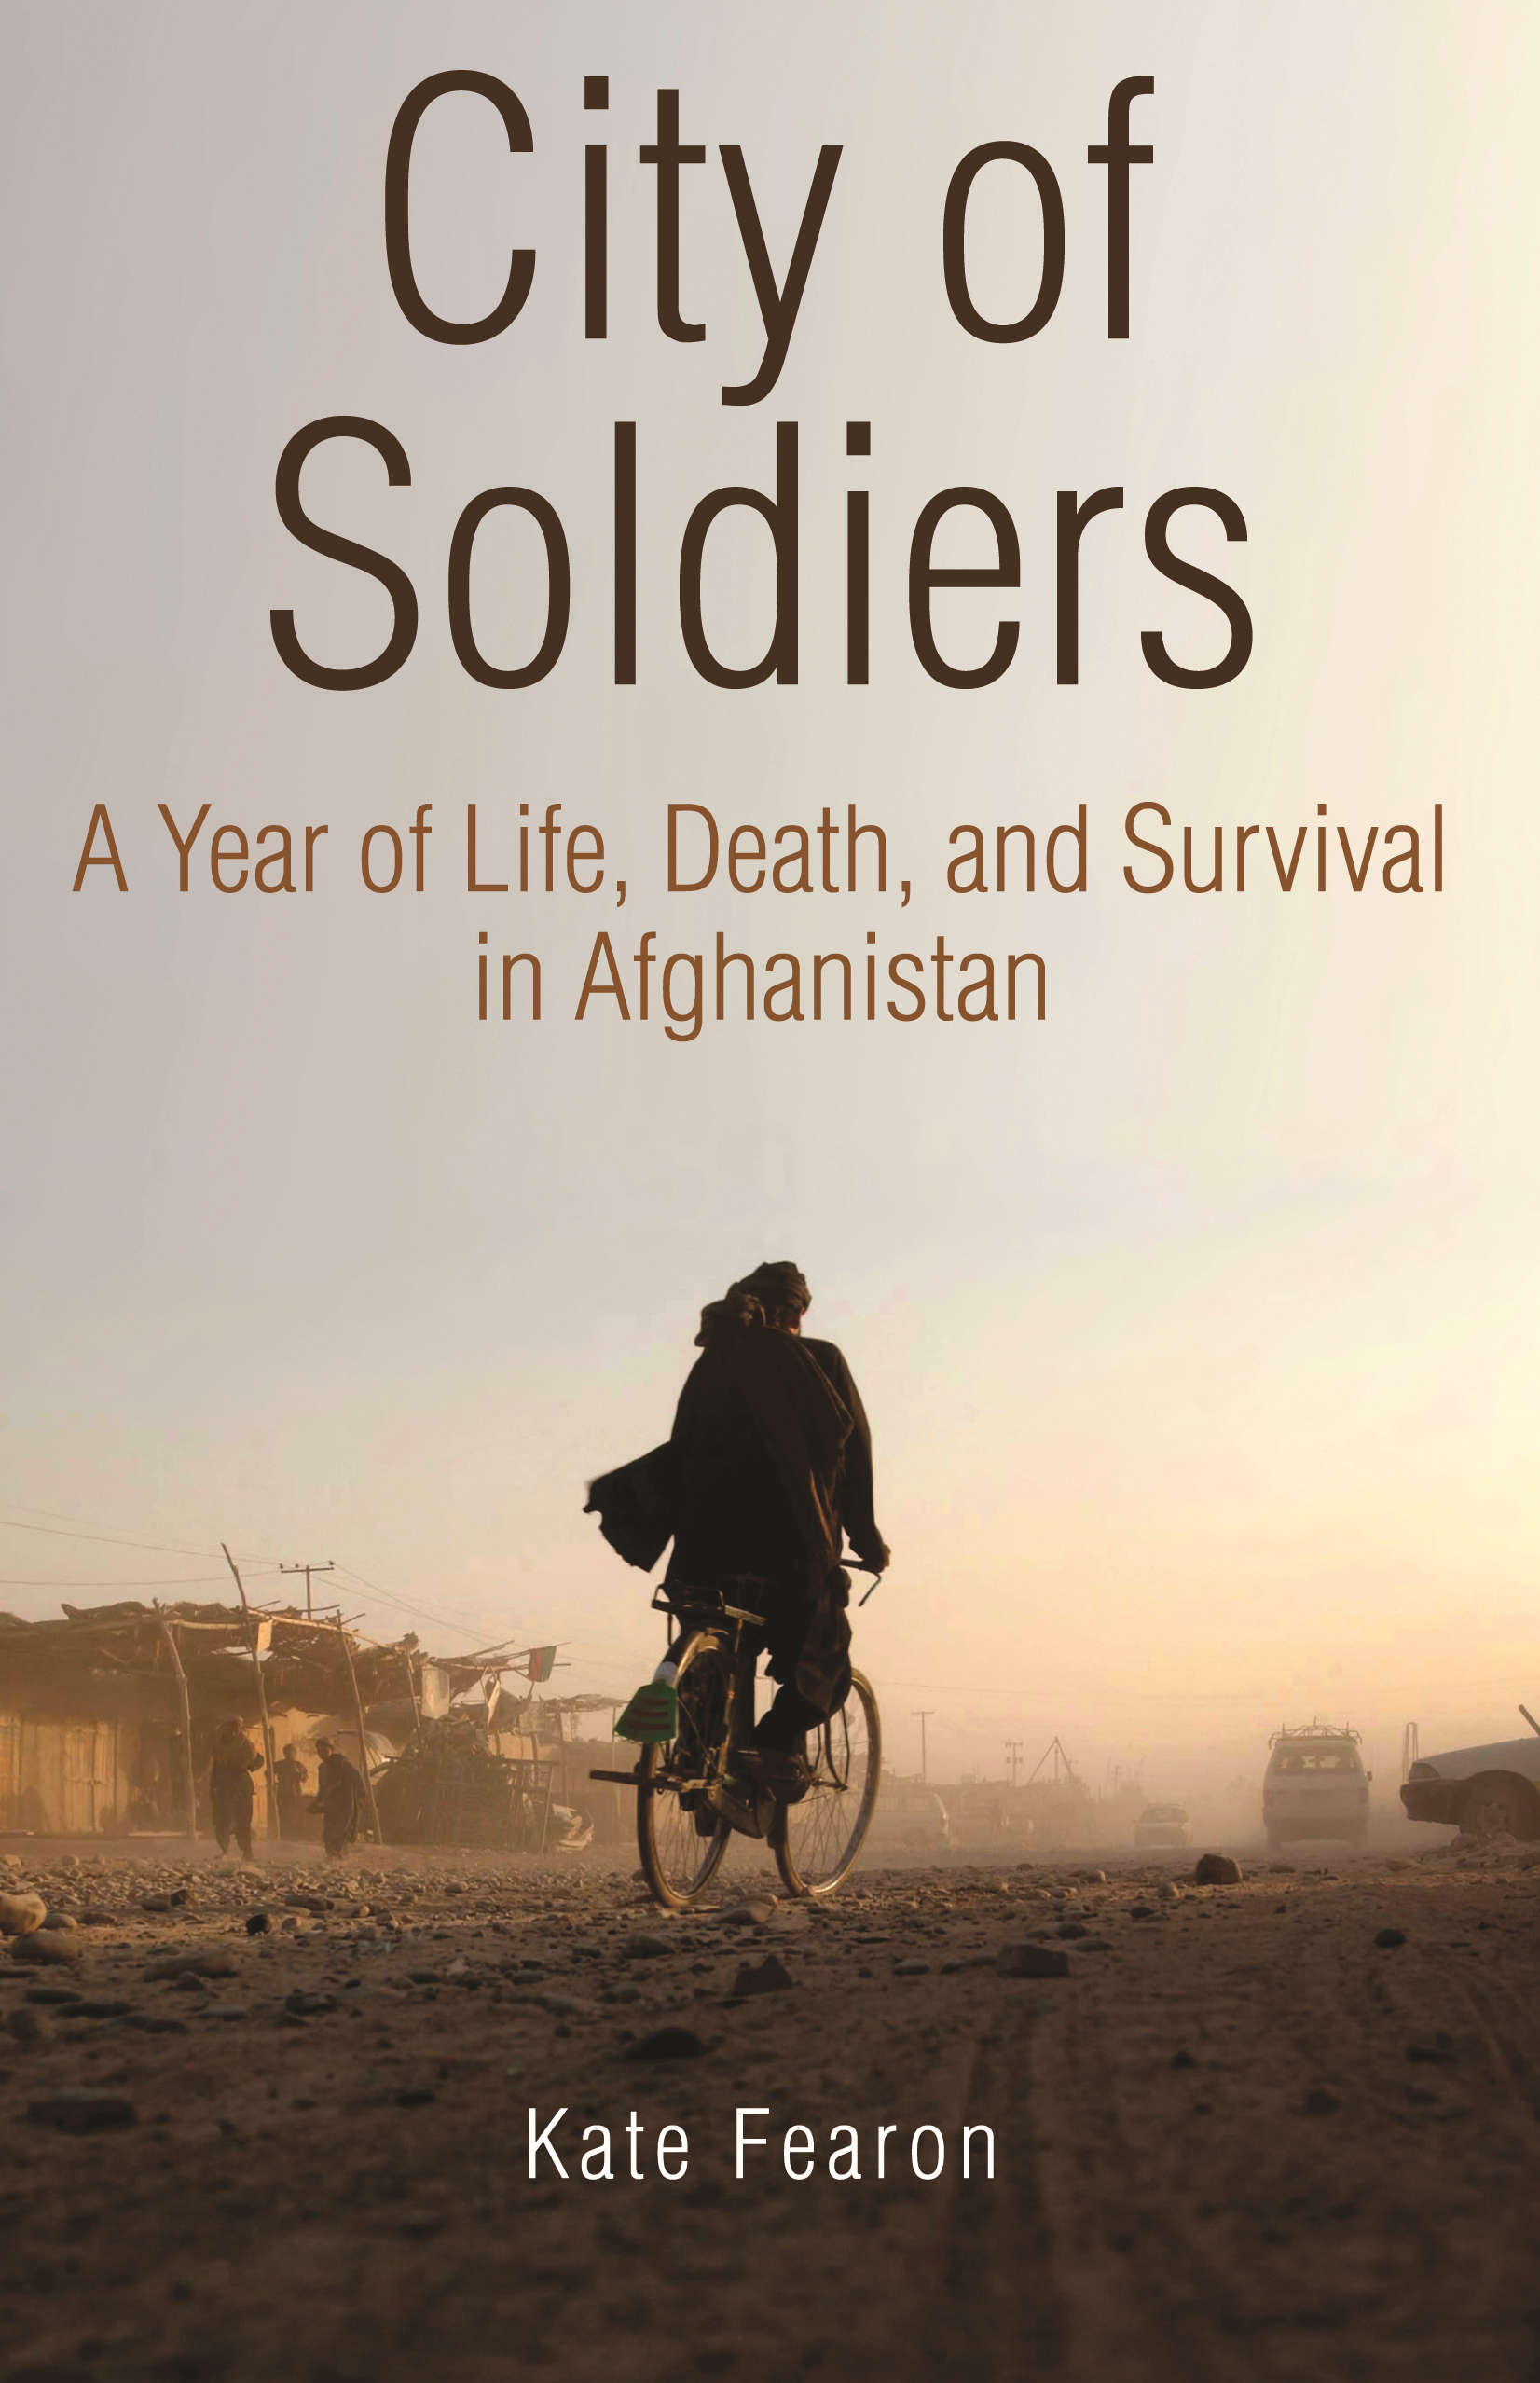 City of Soldiers: A Year of Life, Death, and Survival in Afghanistan